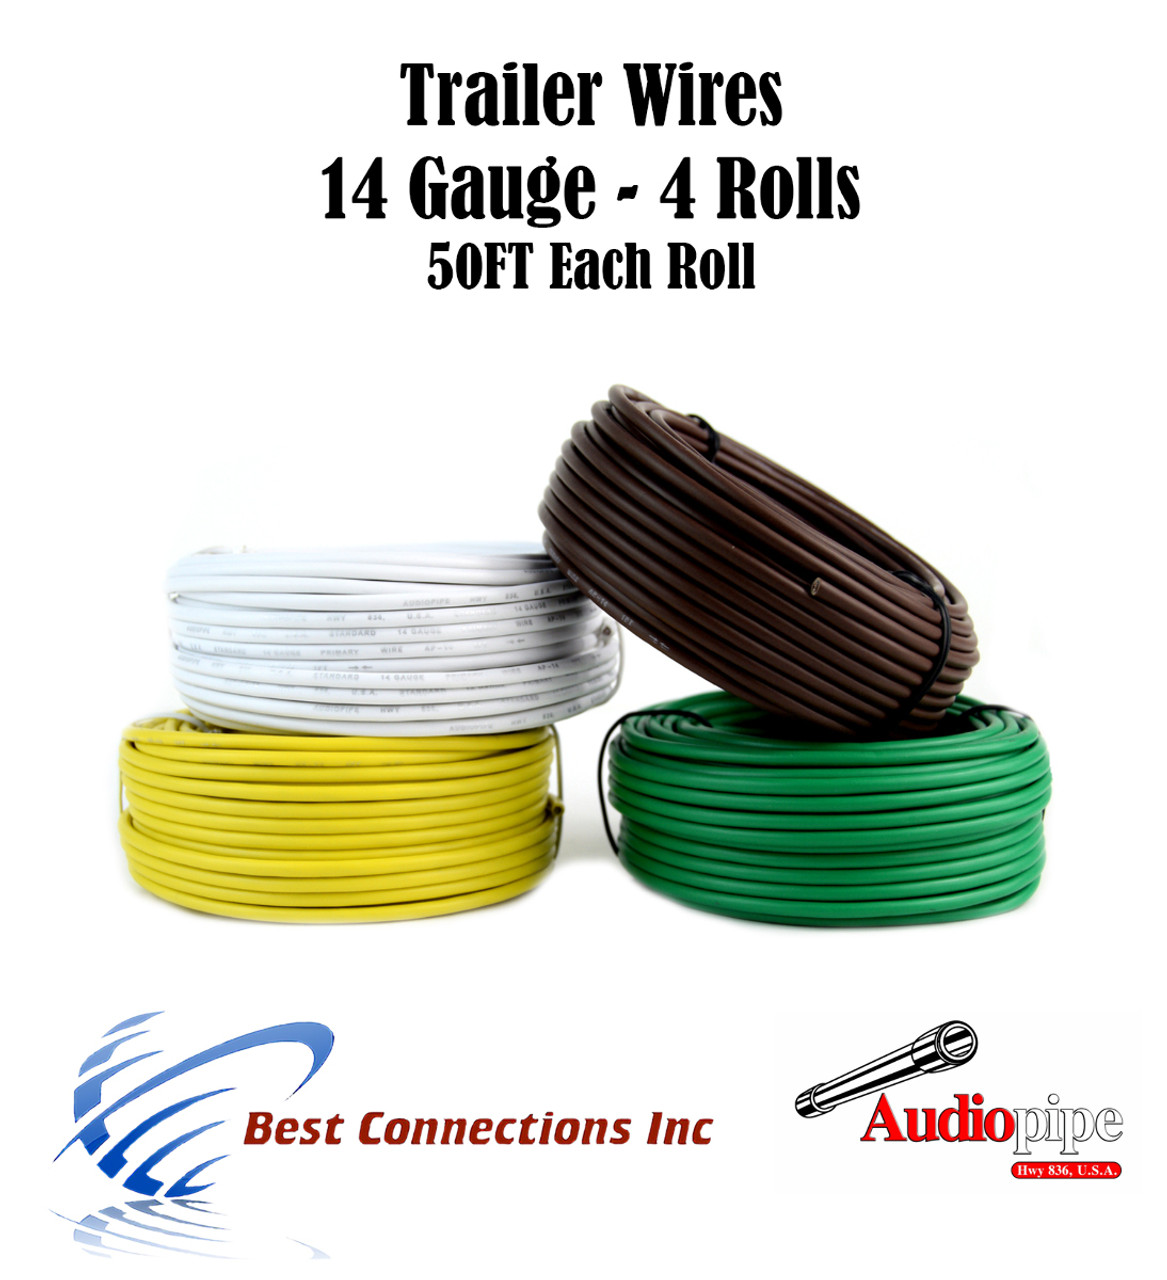 Trailer Light Cable Wiring Harness Trusted Diagram 16 Utility For 50 Feet 14 Gauge 4 Wire